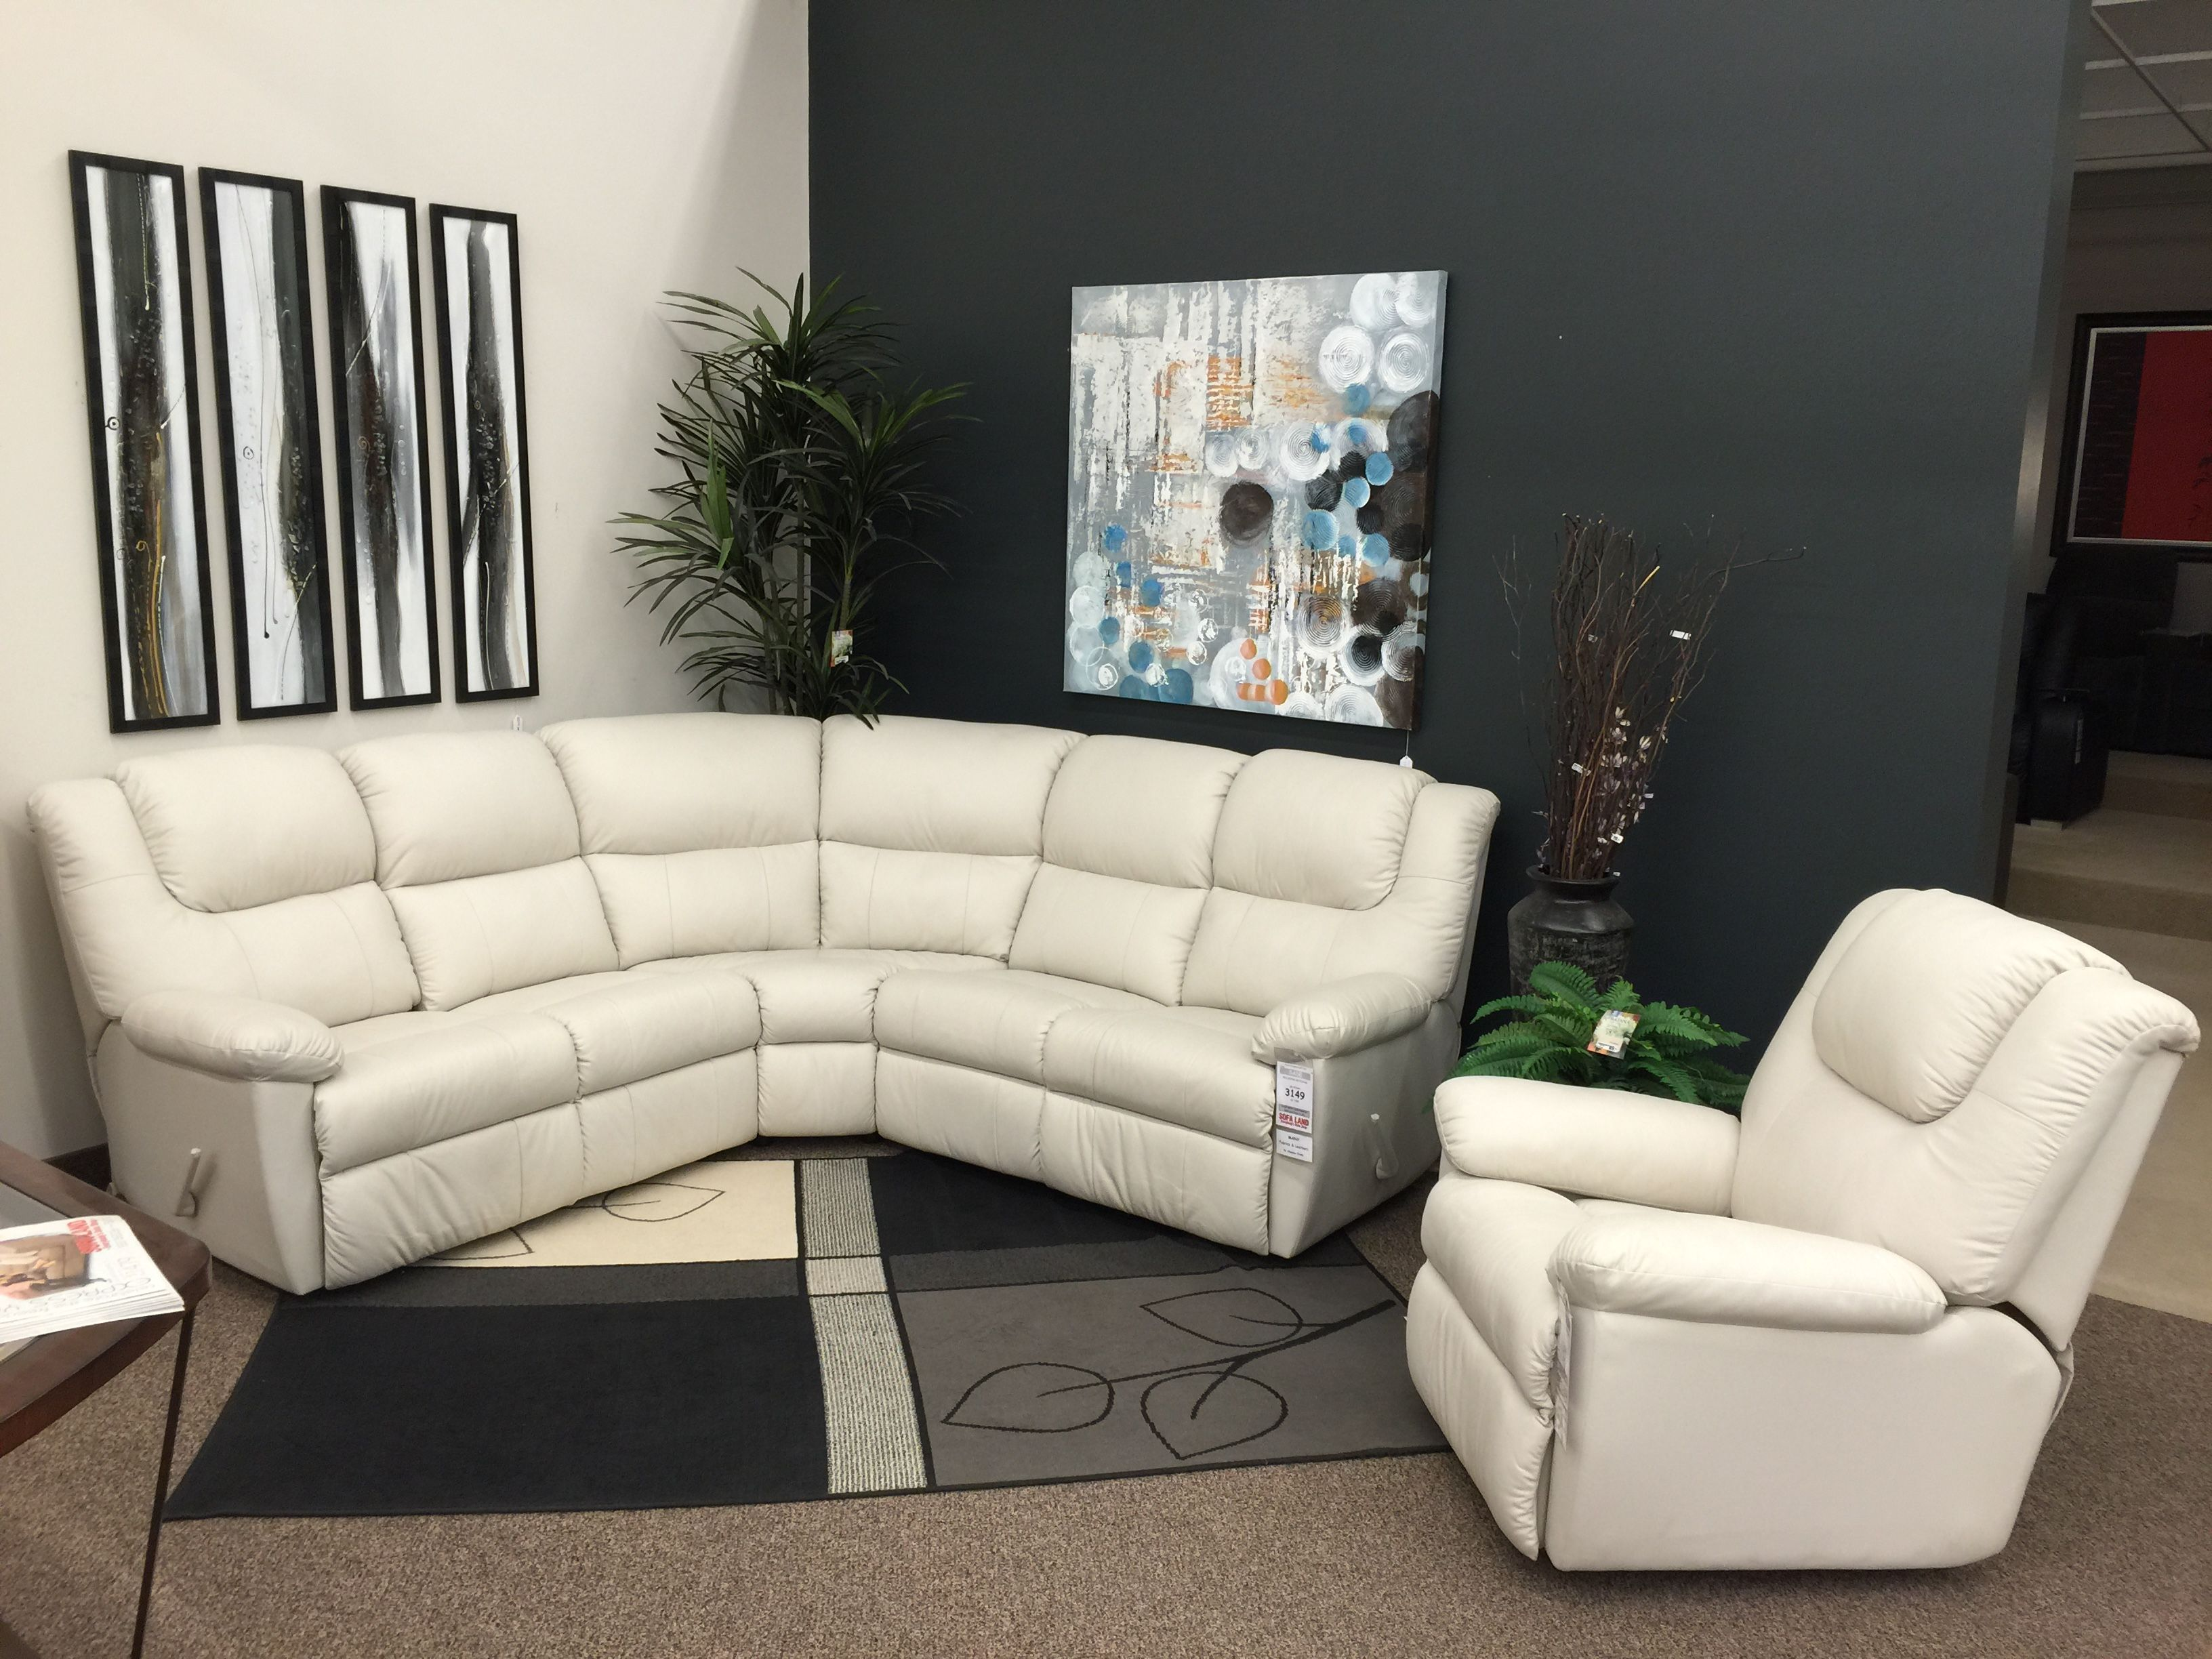 Sade Is A Great Reclining Sectional For Small Spaces Only 96 X 96 As Shown Available In Fabric Or Leathe Sofas For Small Spaces Sectional Sofa Small Sofa